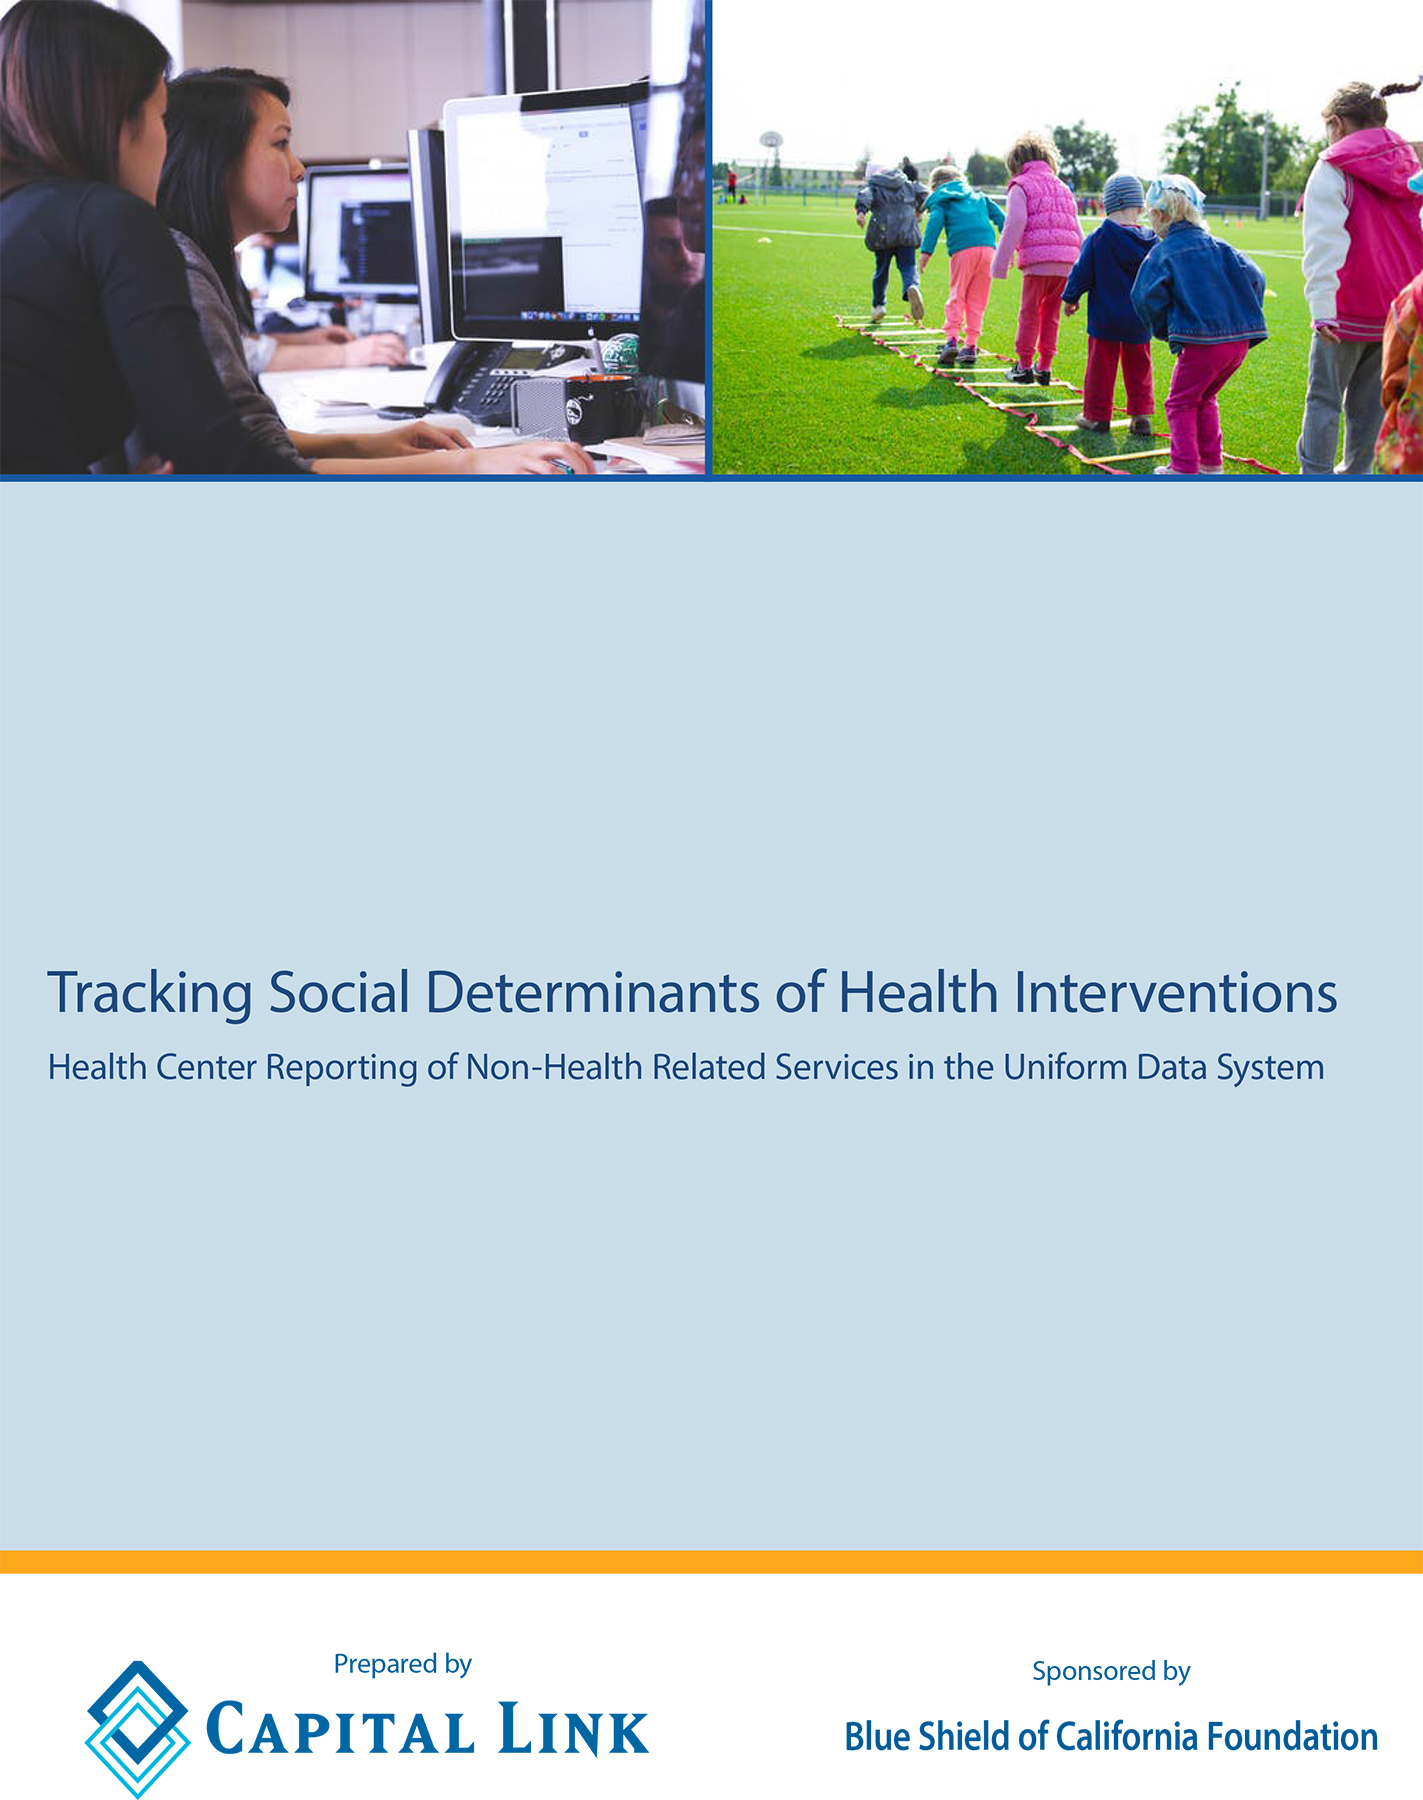 Tracking Social Determinants of Health Interventions 1